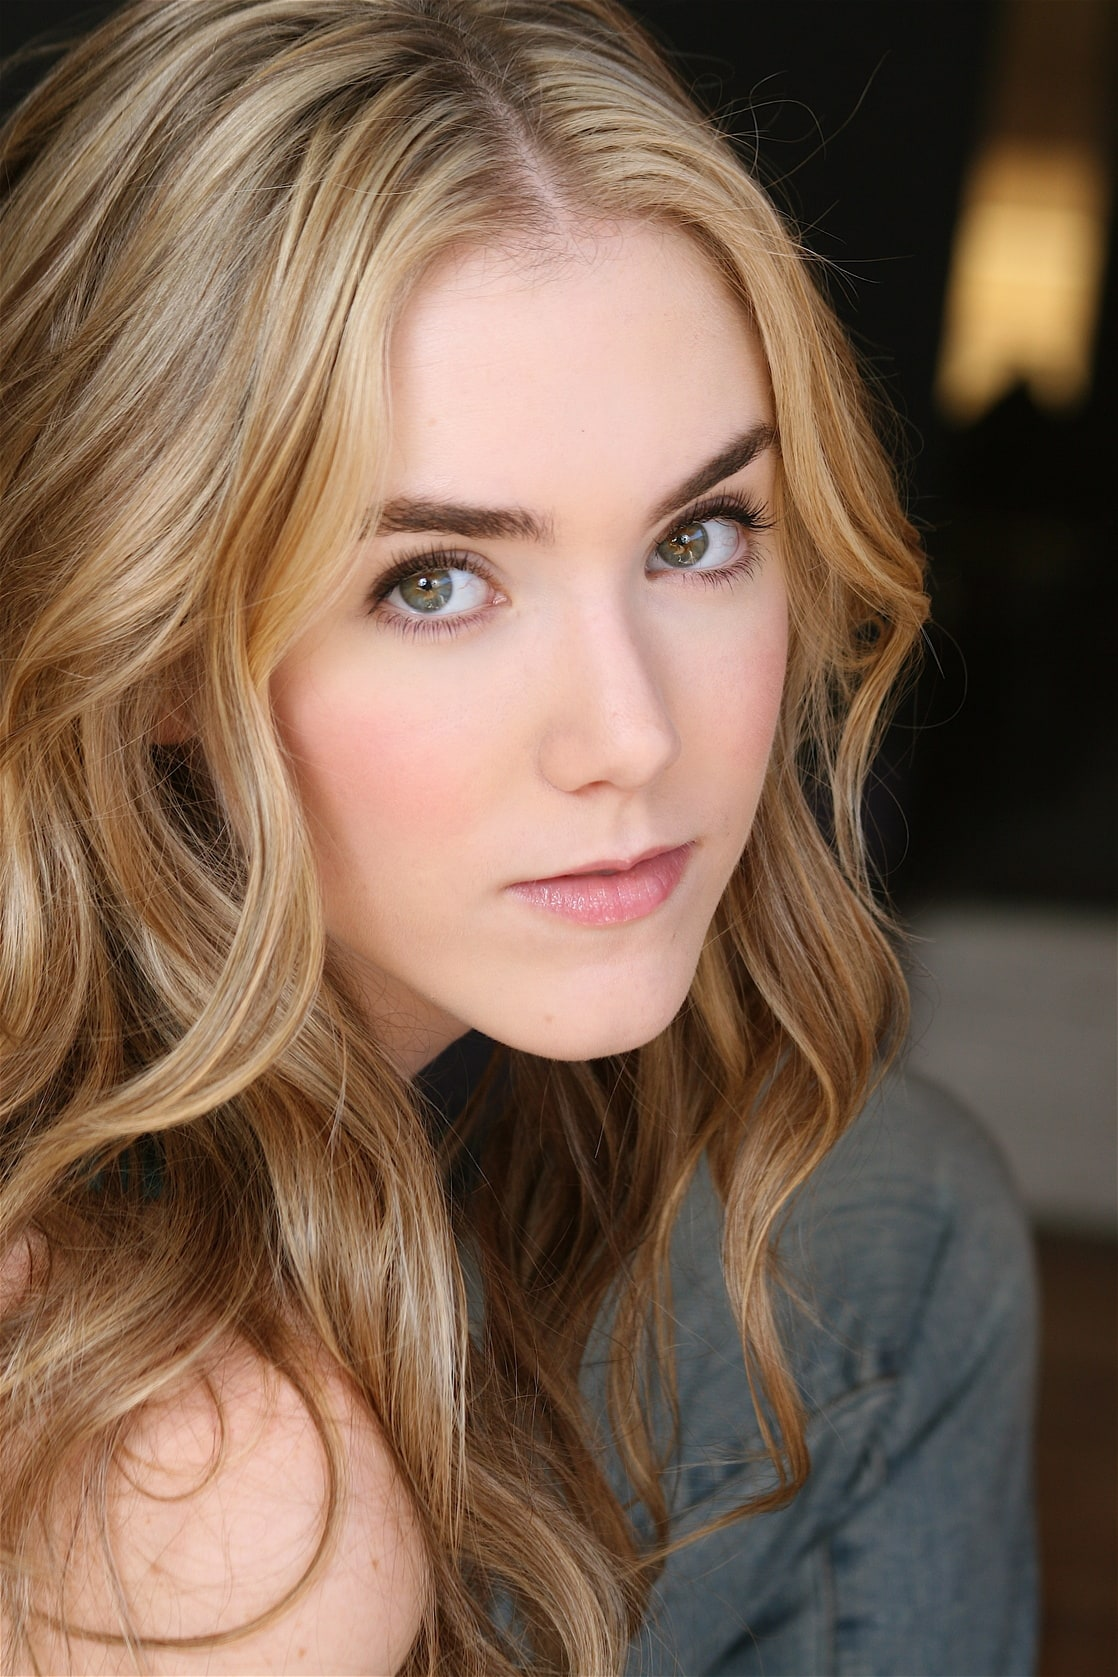 Download Sex Pics Picture Of Spencer Locke Nude Picture Hd